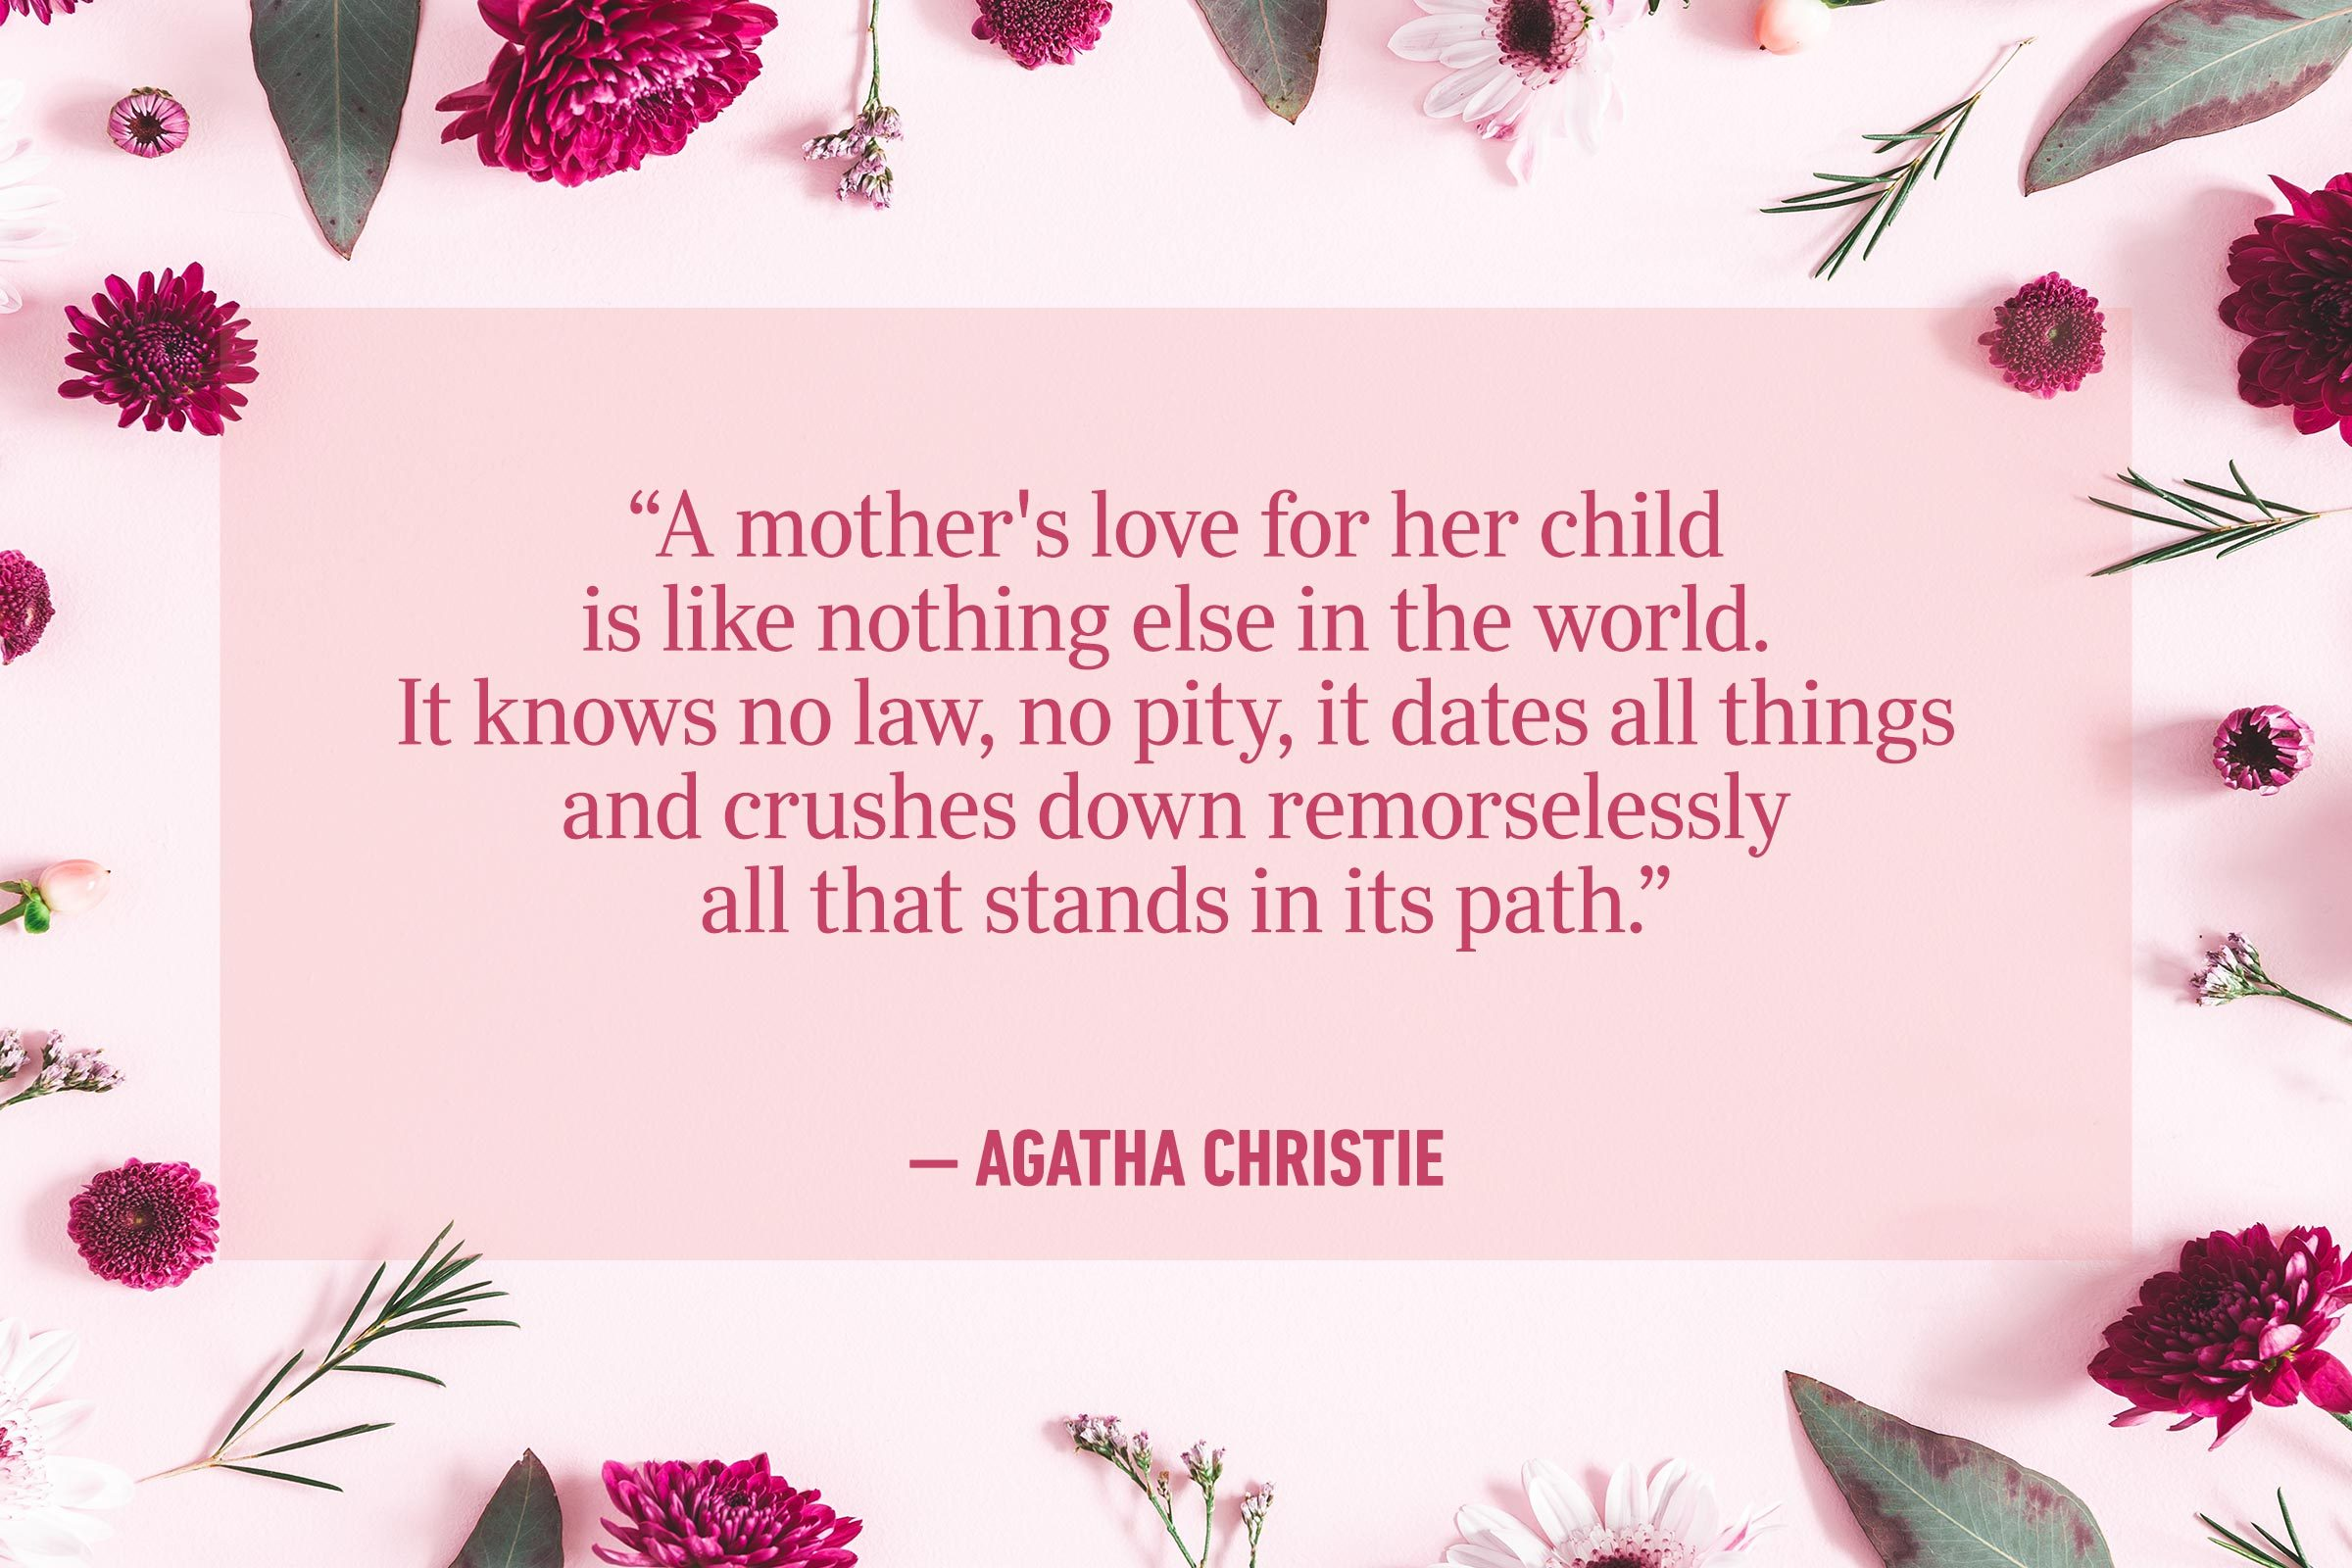 """""""A mother's love for her child is like nothing else in the world. It knows no law, no pity, it dates all things and crushes down remorselessly all that stands in its path."""" —Agatha Christie"""